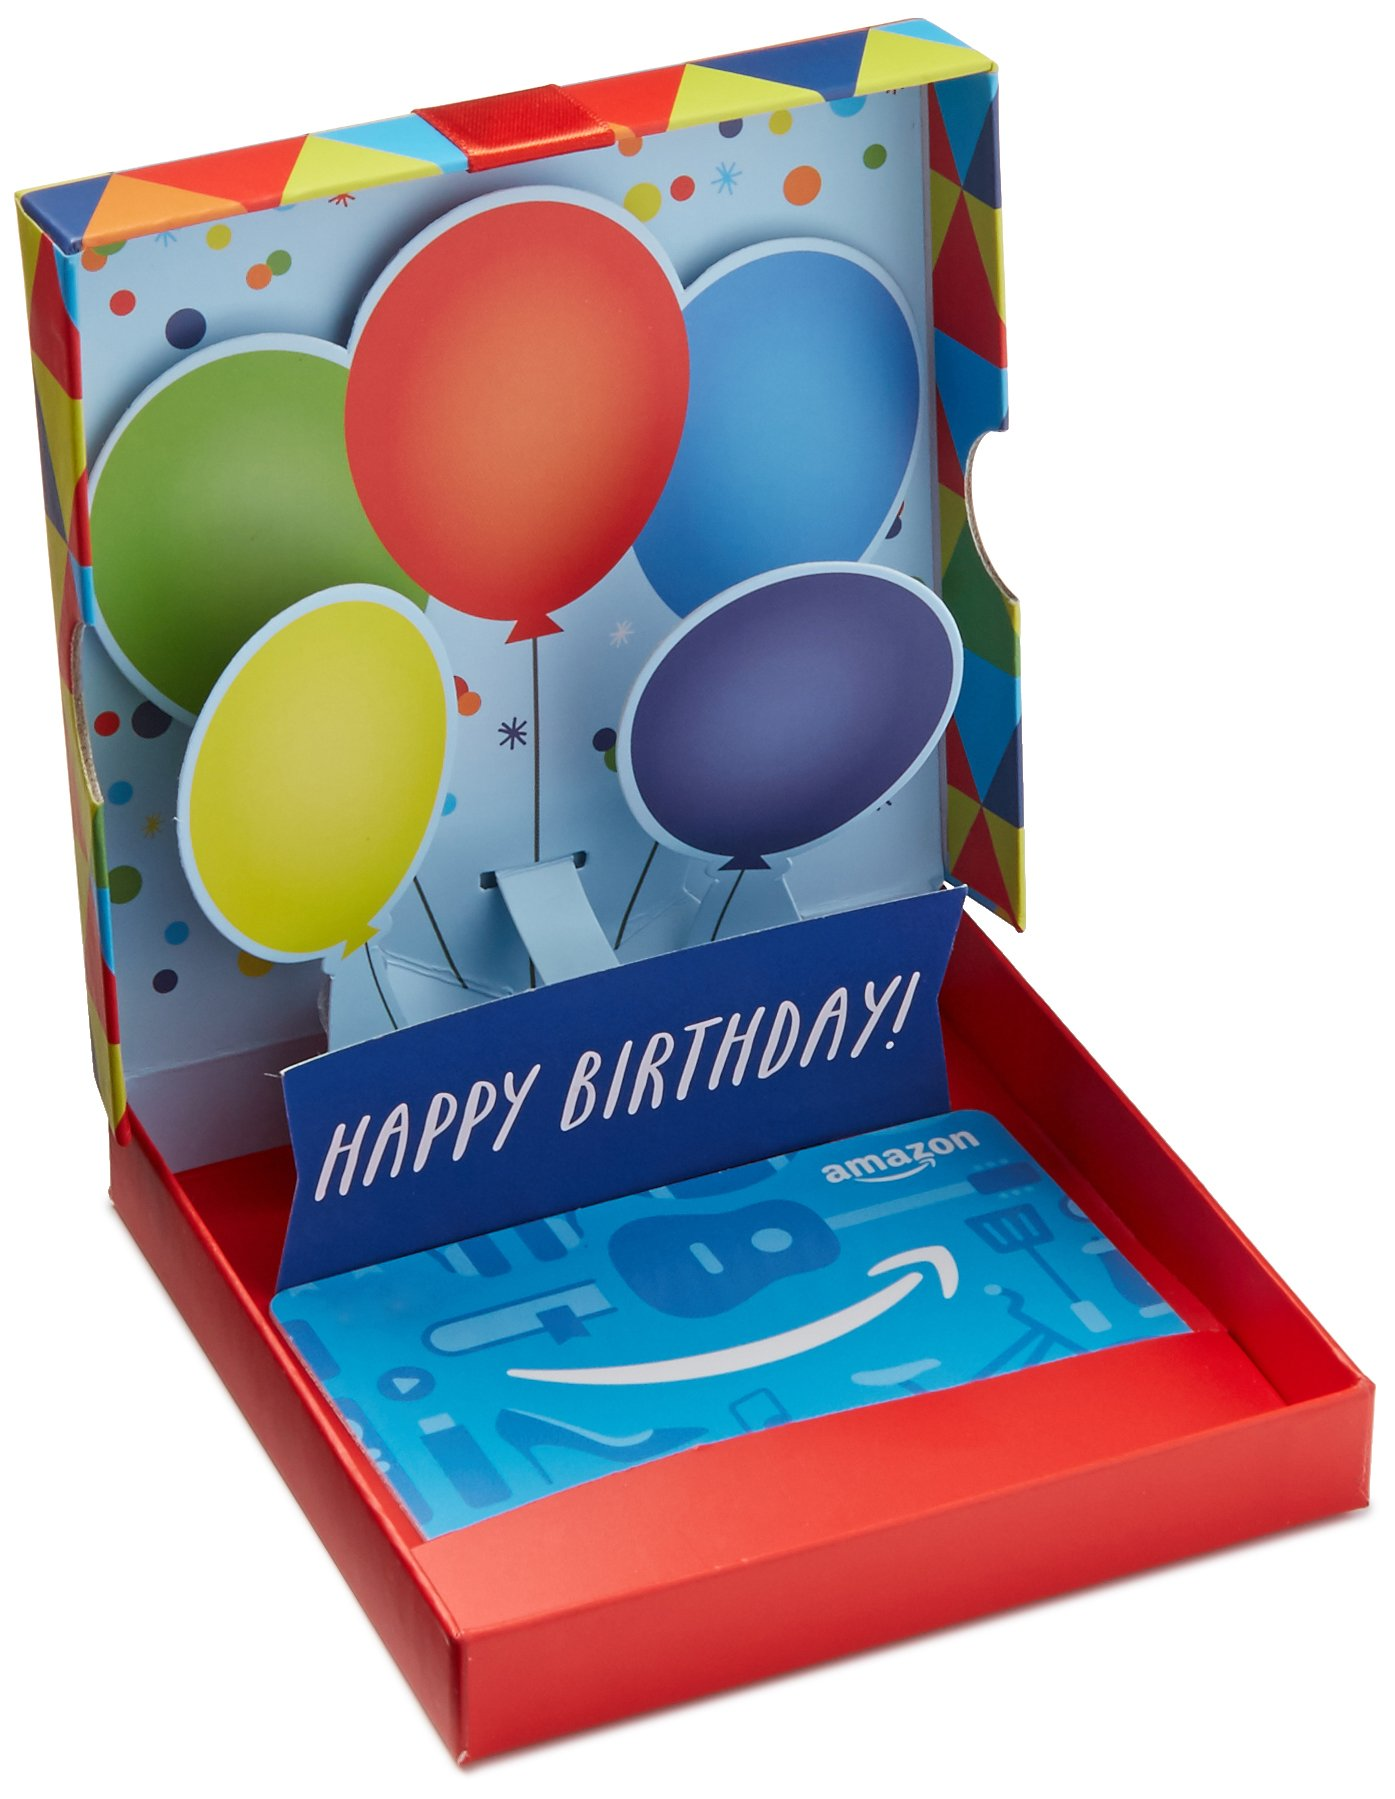 Amazon.com Gift Card in a Birthday Pop-Up Box by Amazon